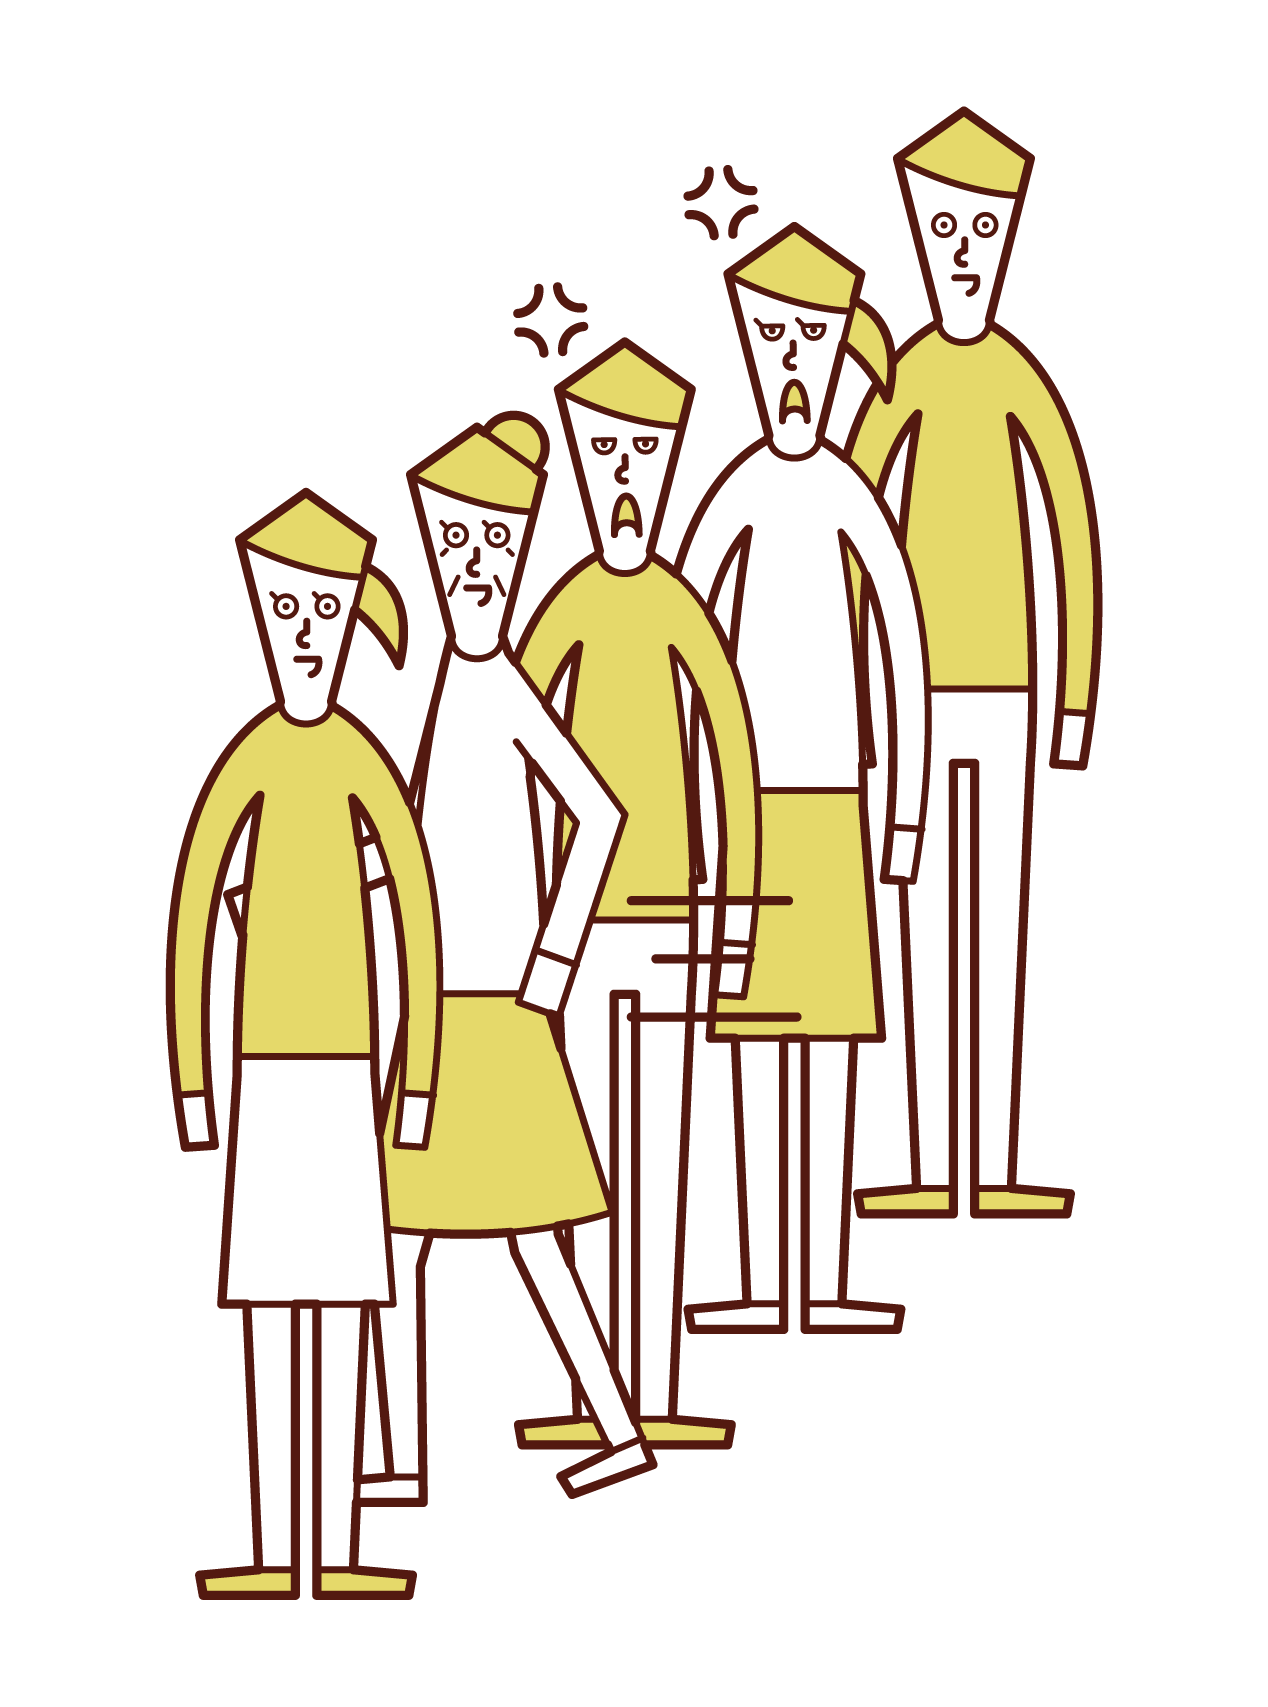 Illustration of a person (grandmother) who pulls out the order